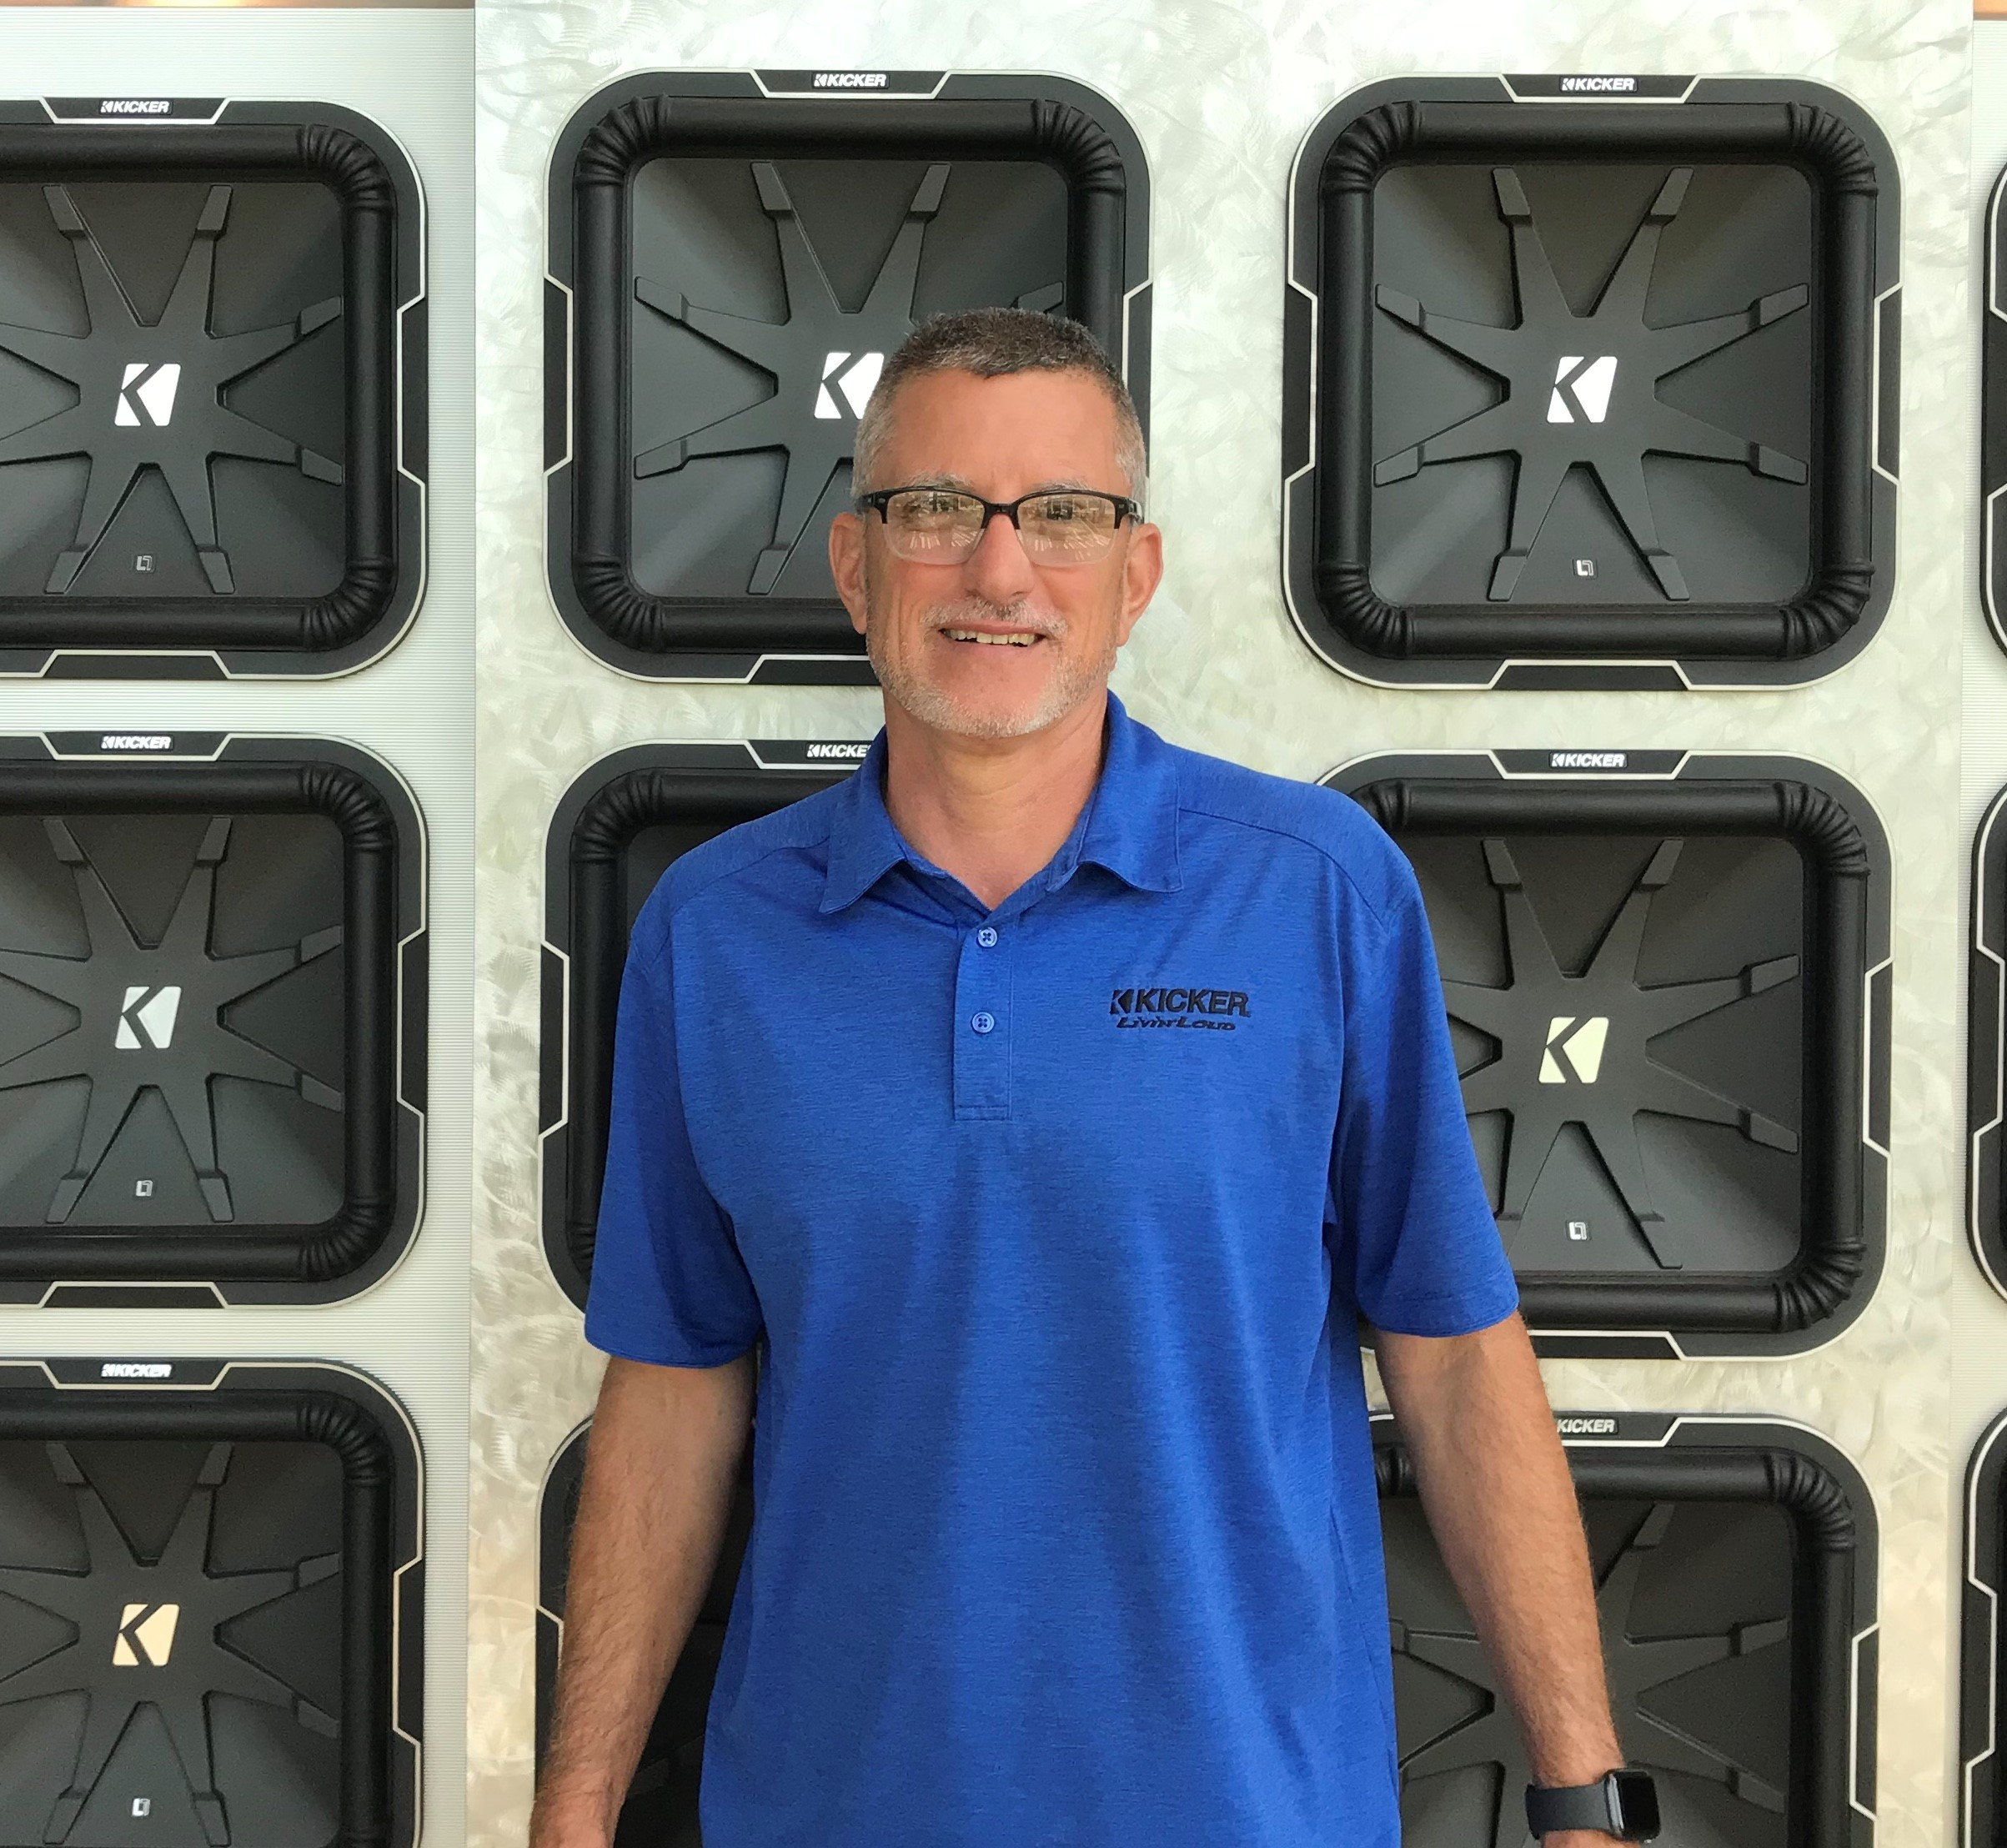 David GlasgowStillwater Designs, manufacturer of KICKER audio products, promoted David Glasgow to international sales manager